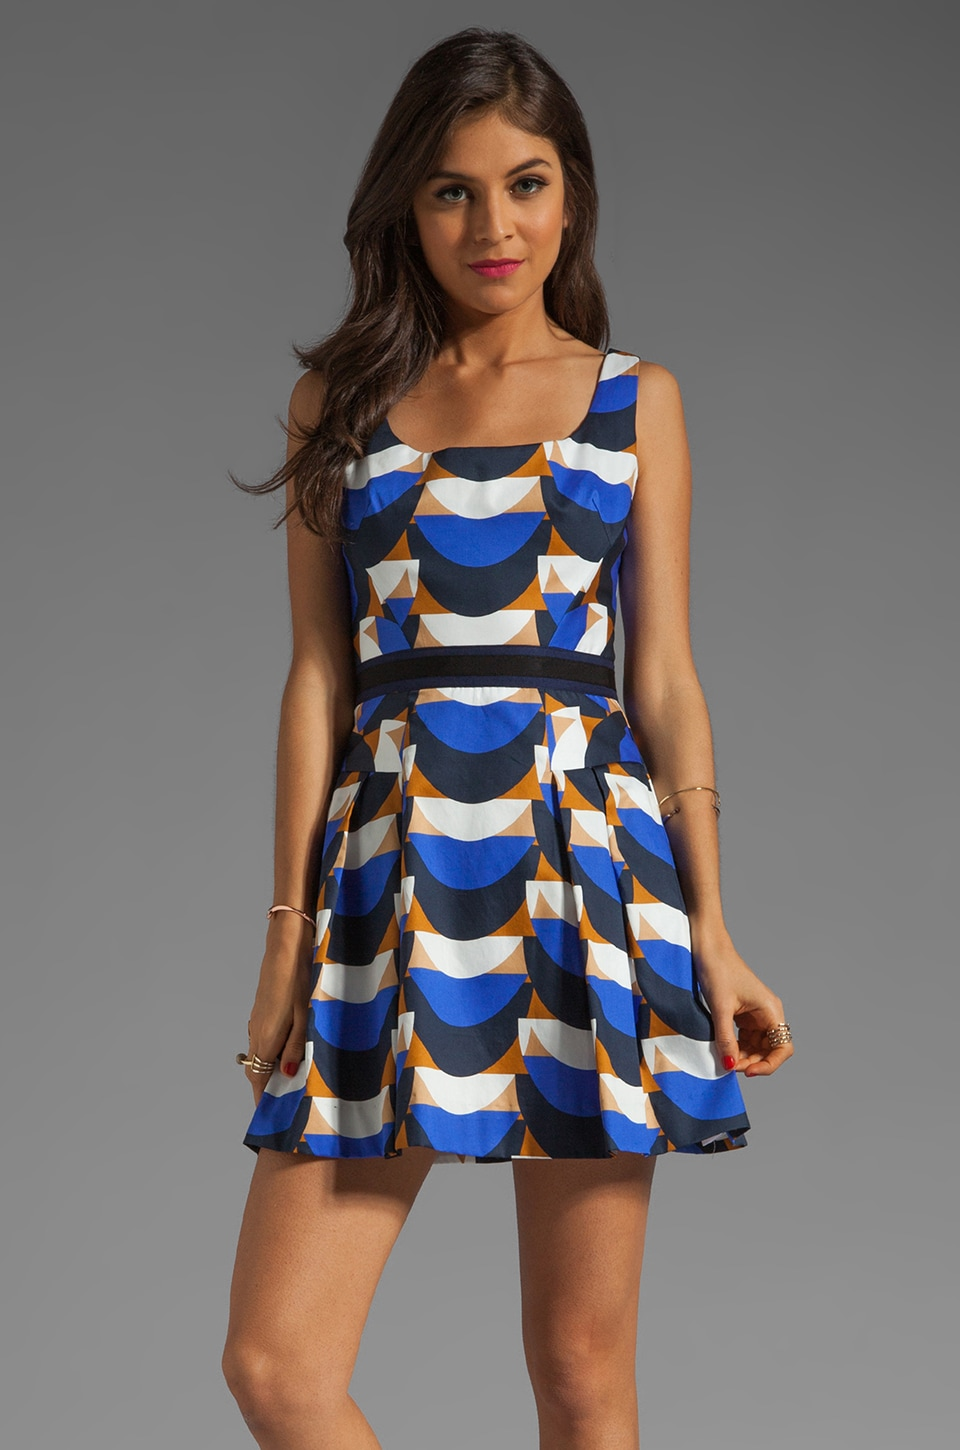 MILLY Scallop Print Isabelle Short Dress in Cobalt